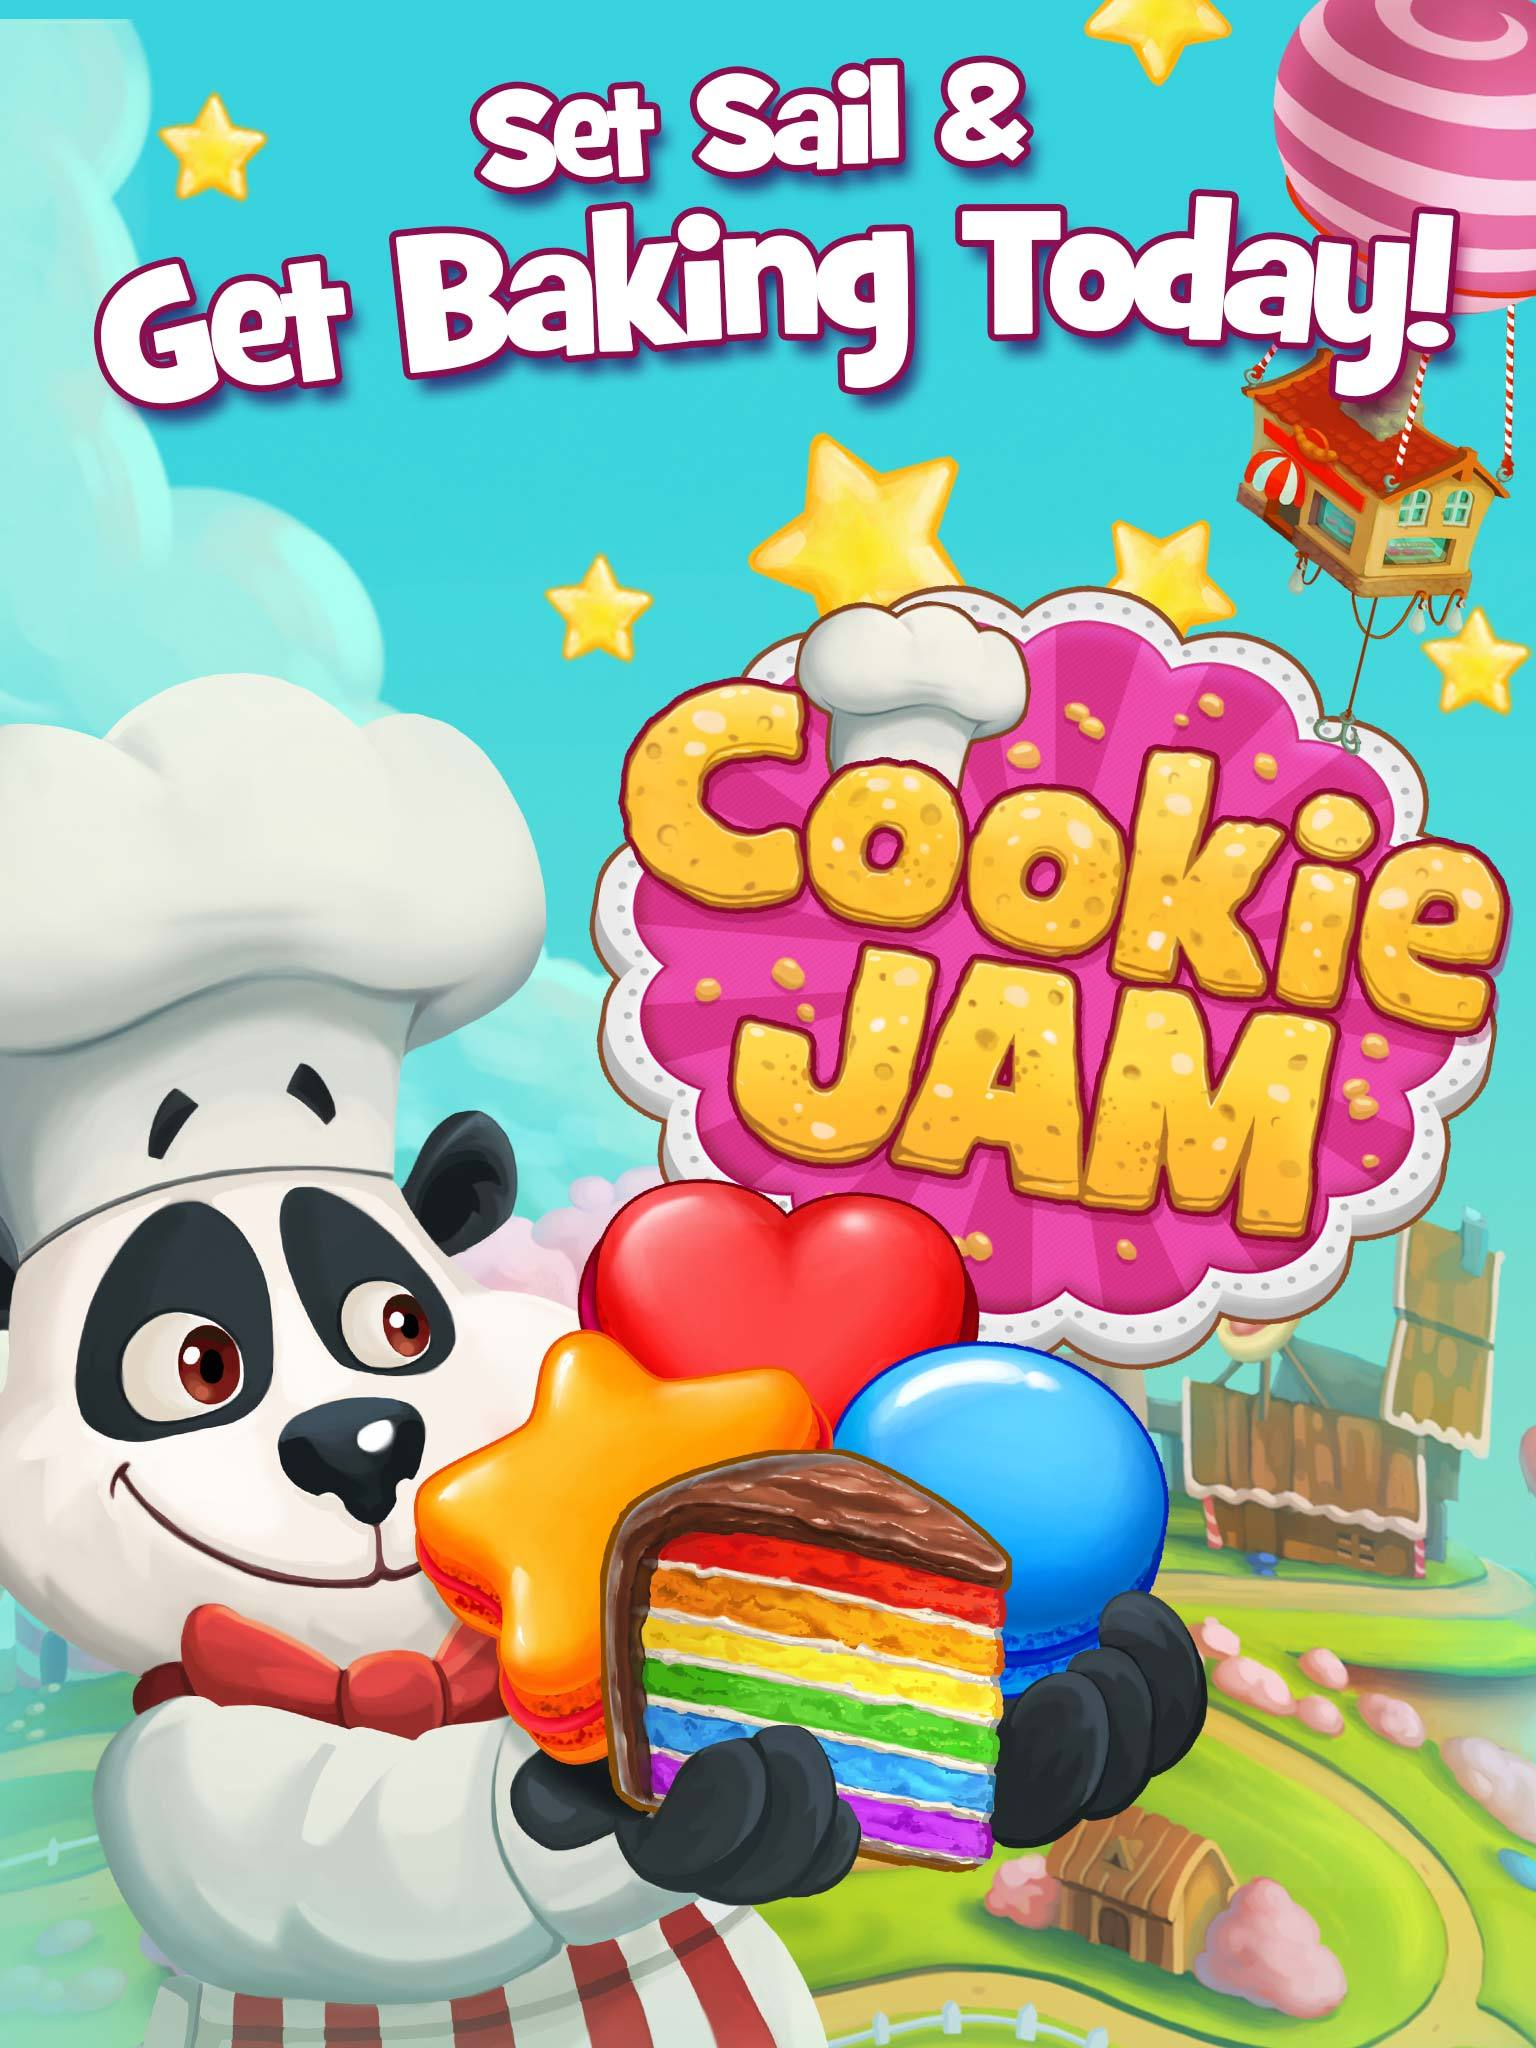 Cookie Jam on iOS (Graphic: Business Wire)